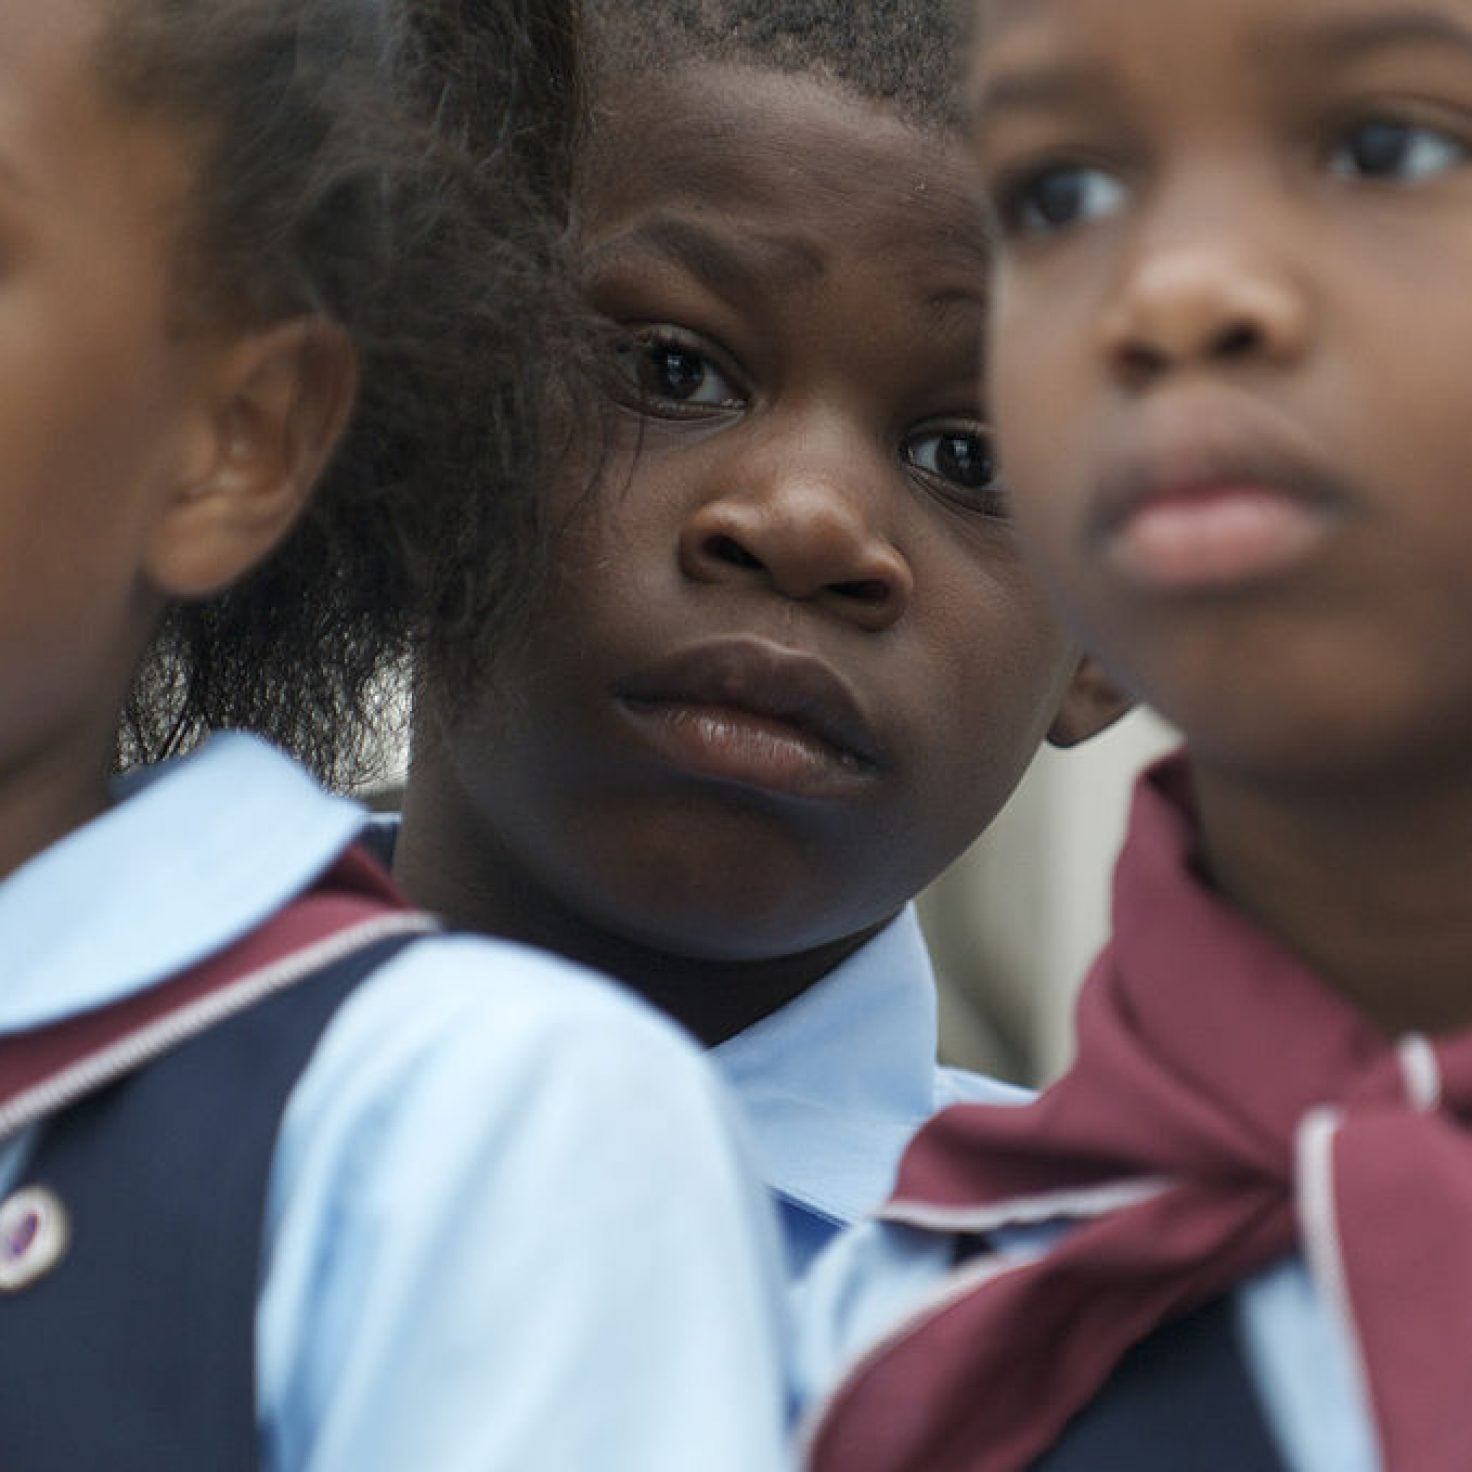 And How Are The Children? Lessons From New Orleans On Trauma Post Katrina And The COVID-19 Crisis